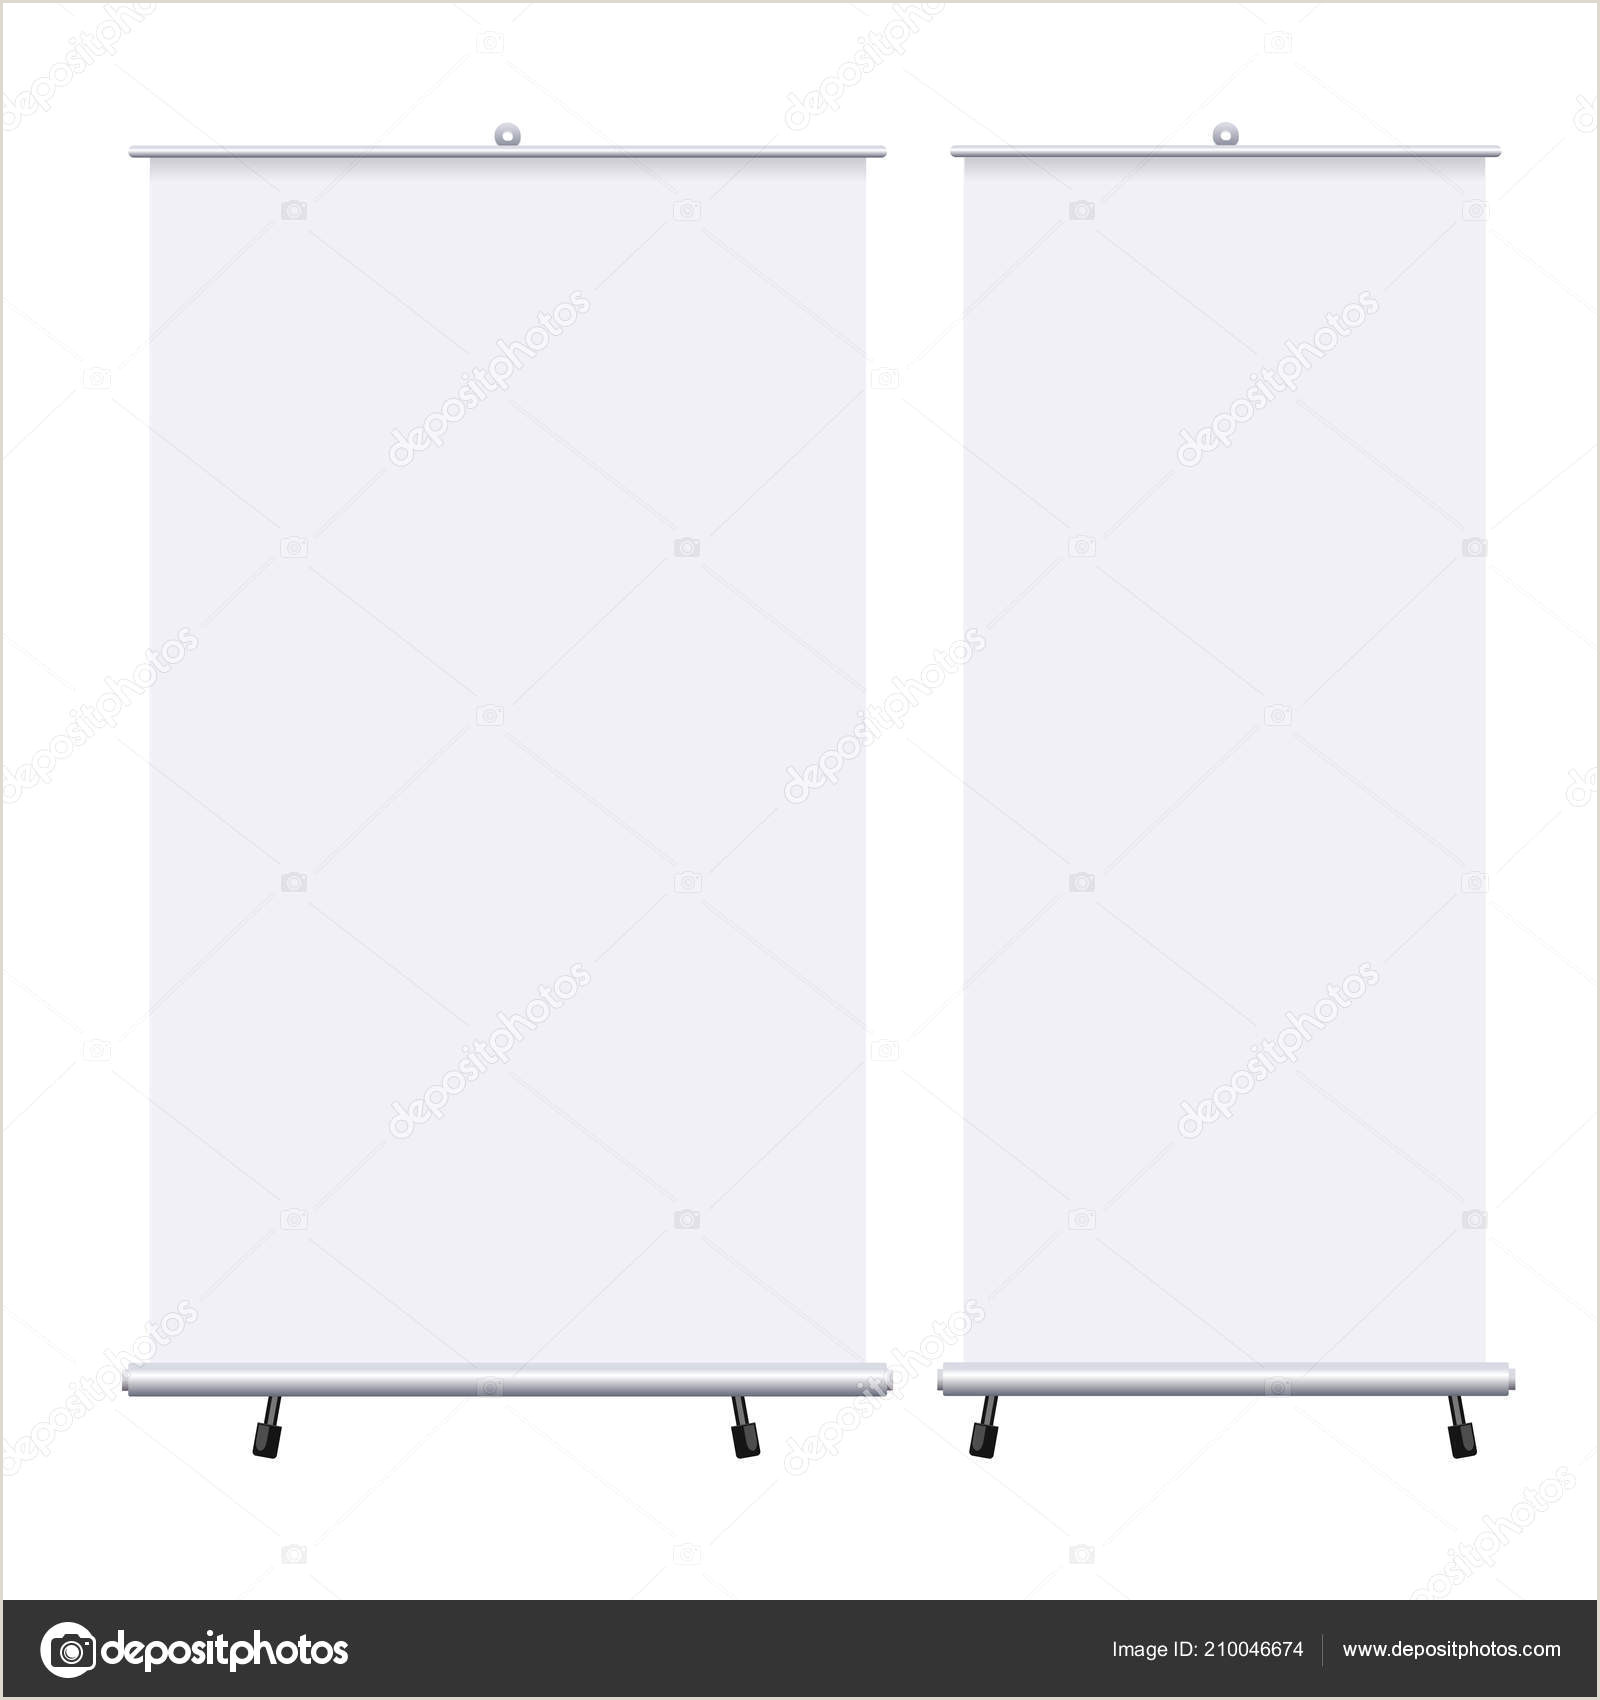 Pop Up Banner Psd Blank Roll Up Banners Set Isolated On The White Background Design Template Blank Pop Up Banner For Presentation Corporate Training And Briefing